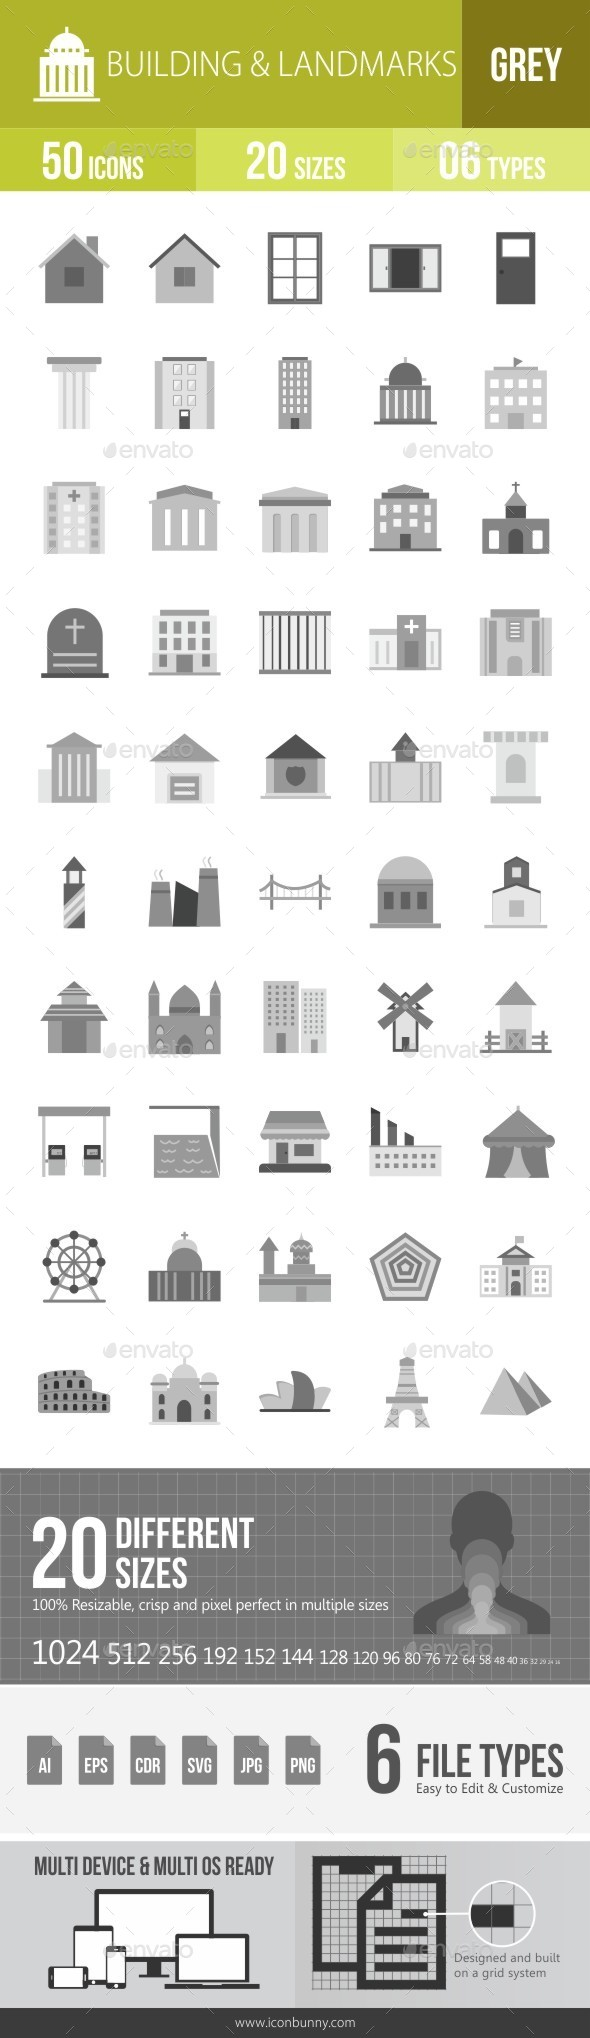 Buildings & Landmarks Greyscale Icons - Icons